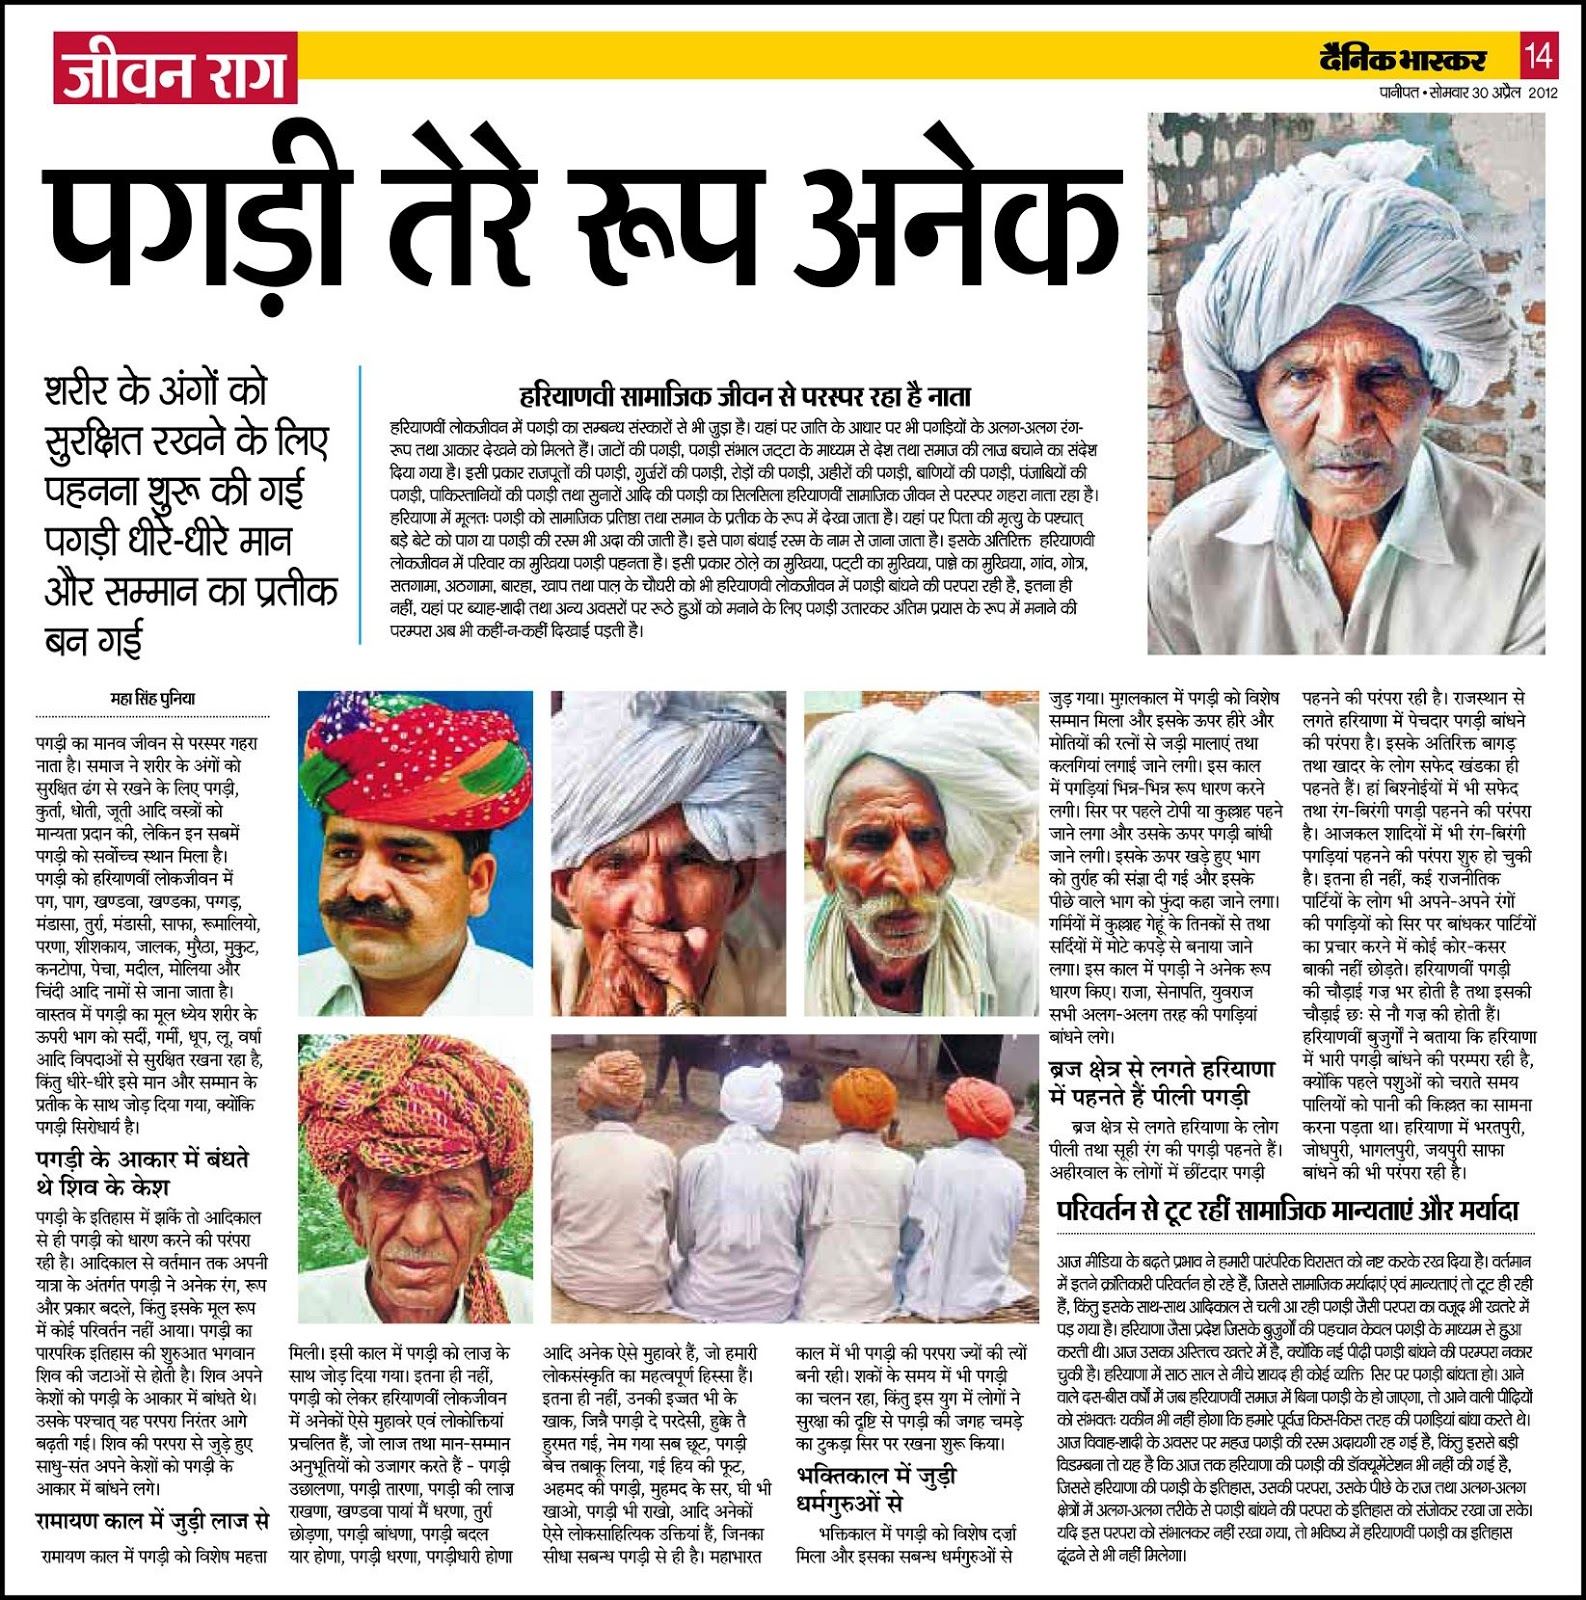 dating dainik bhaskar He's known for his view of artistic freedom and is a conscientious objector to the corporate control of art he is a believer in the idea that artistic expressions and creations are an integral part of cultural life.